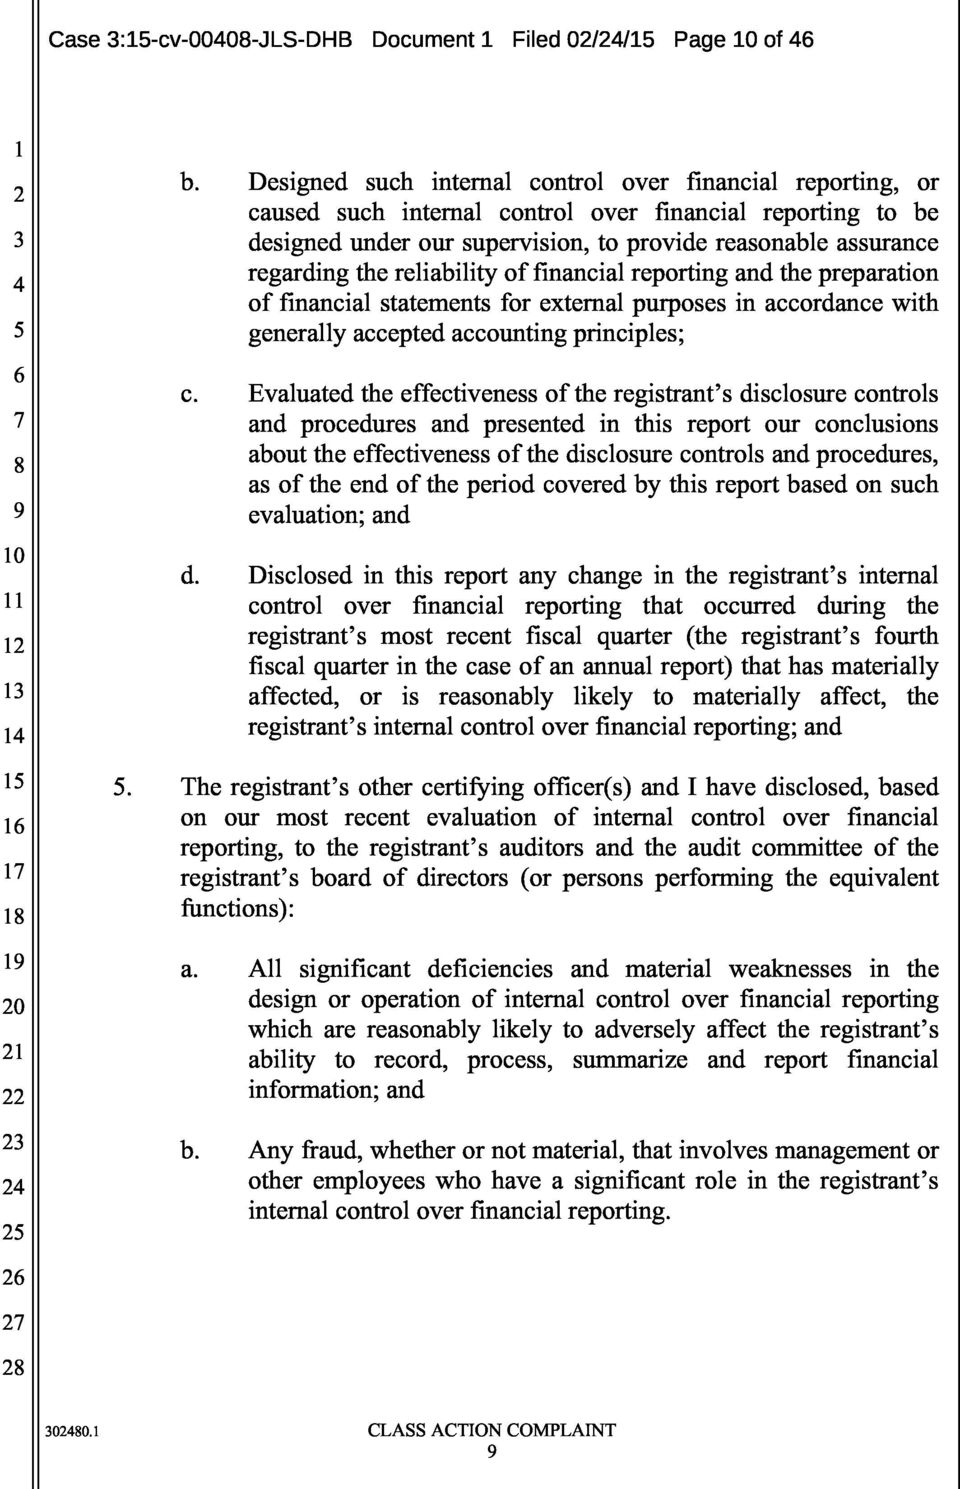 reliability of financial reporting and the preparation of financial statements for external purposes in accordance with 5 generally accepted accounting principles; c.